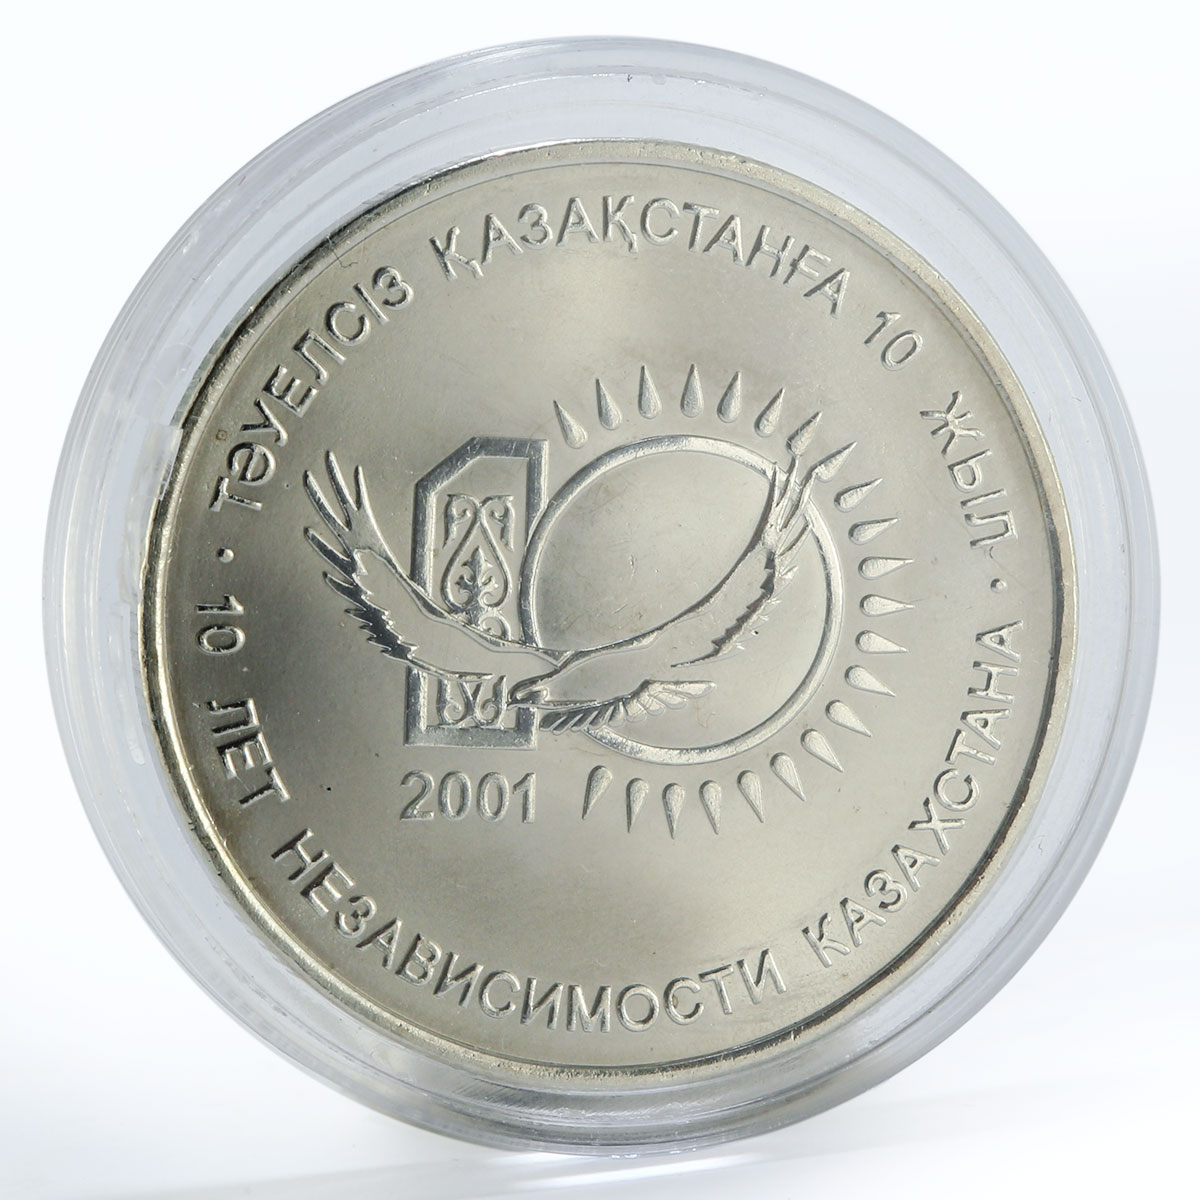 Kazakhstan 50 tenge 10 Years of Independence copper-nickel coin 2001